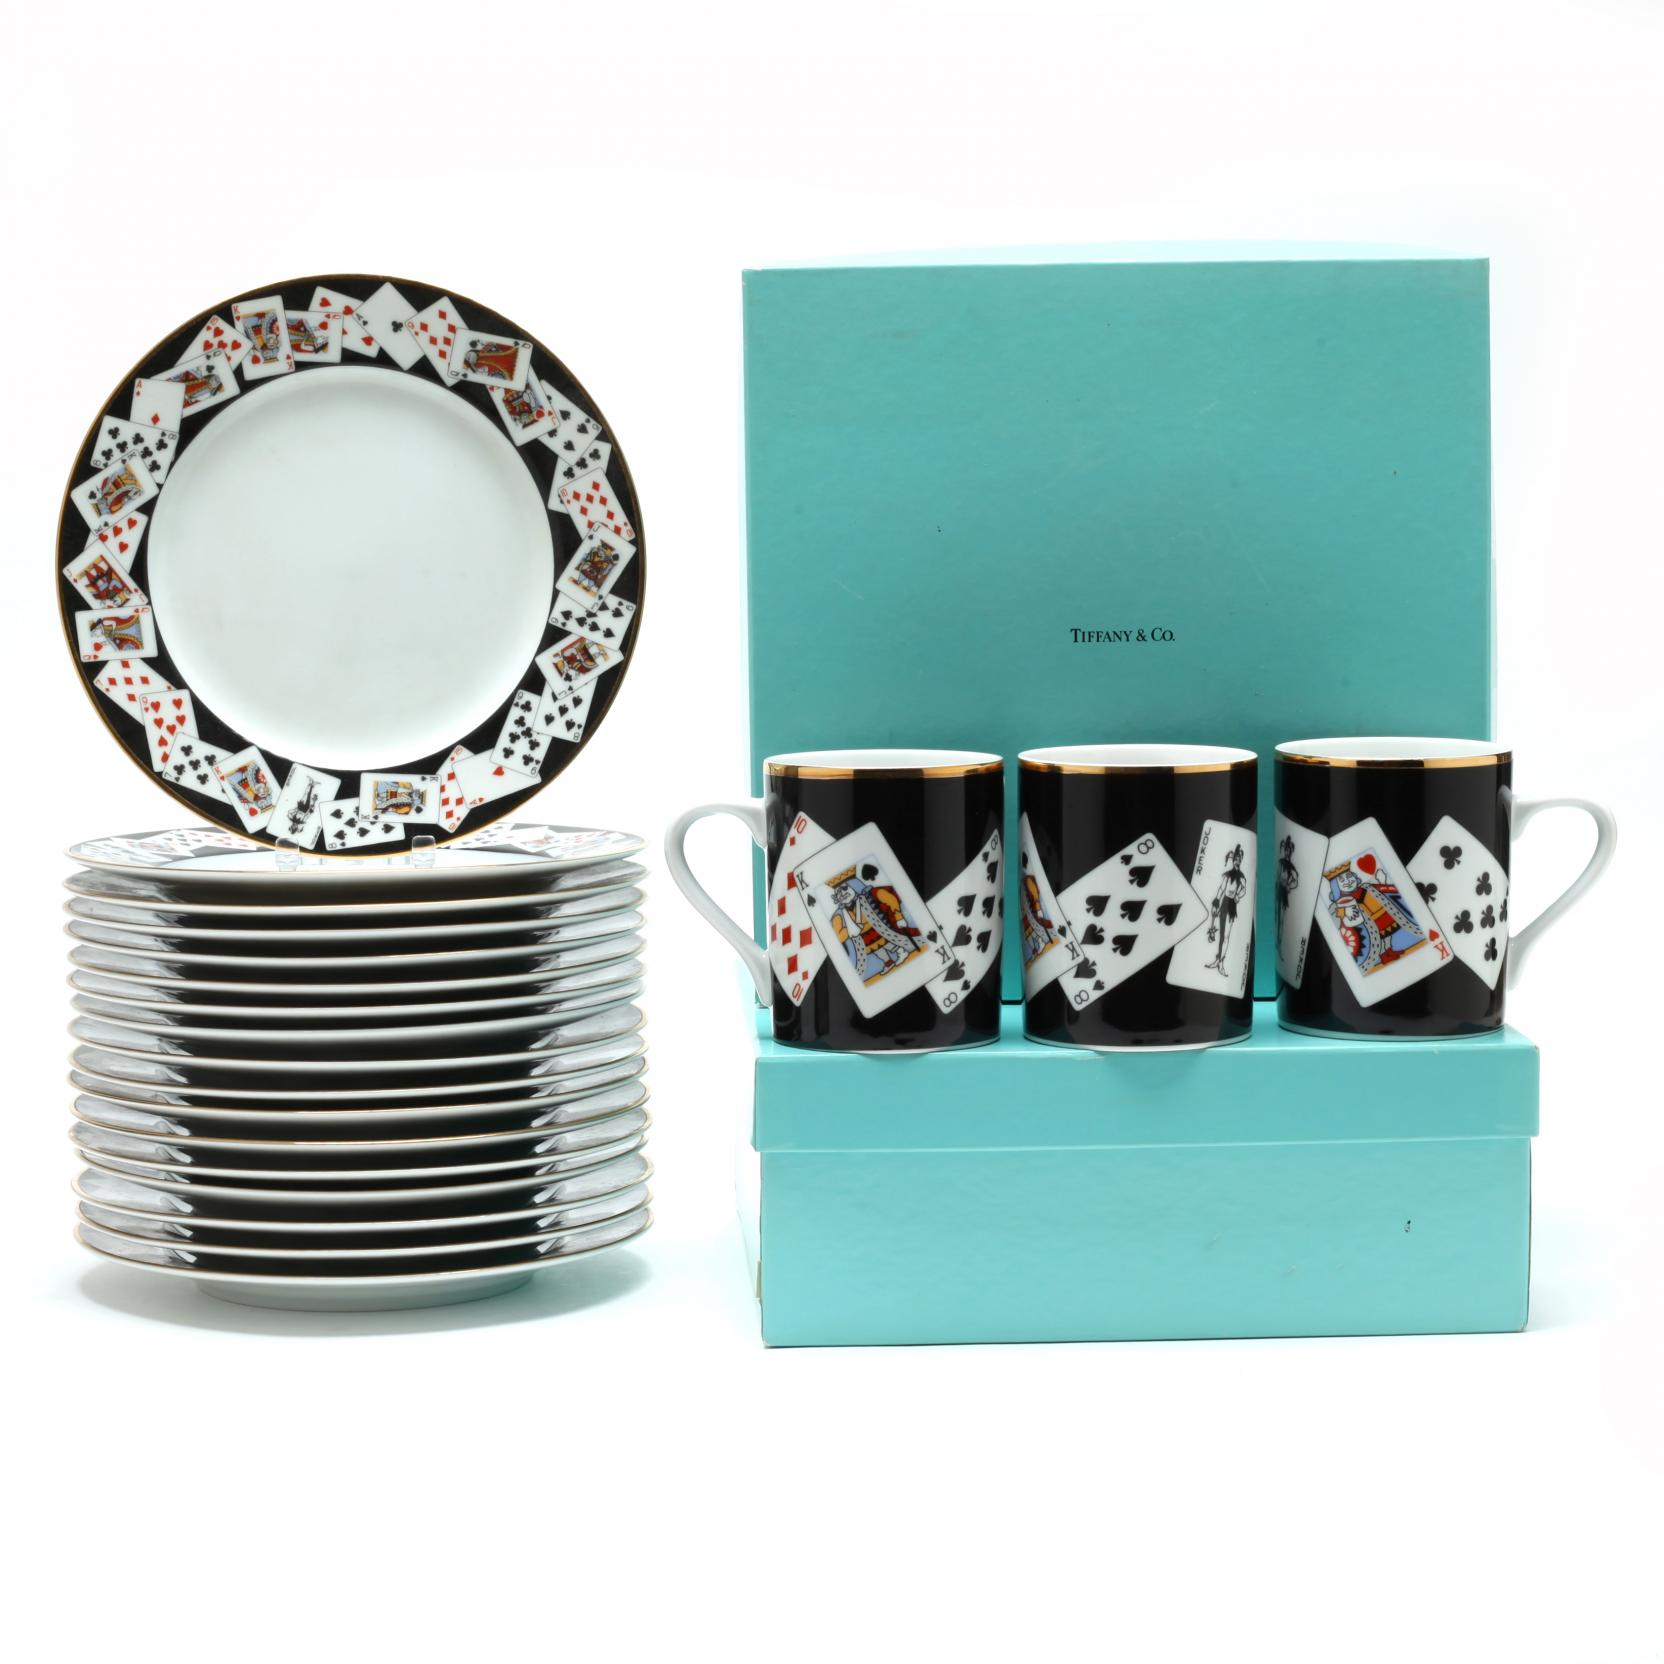 tiffany-co-playing-cards-china-set